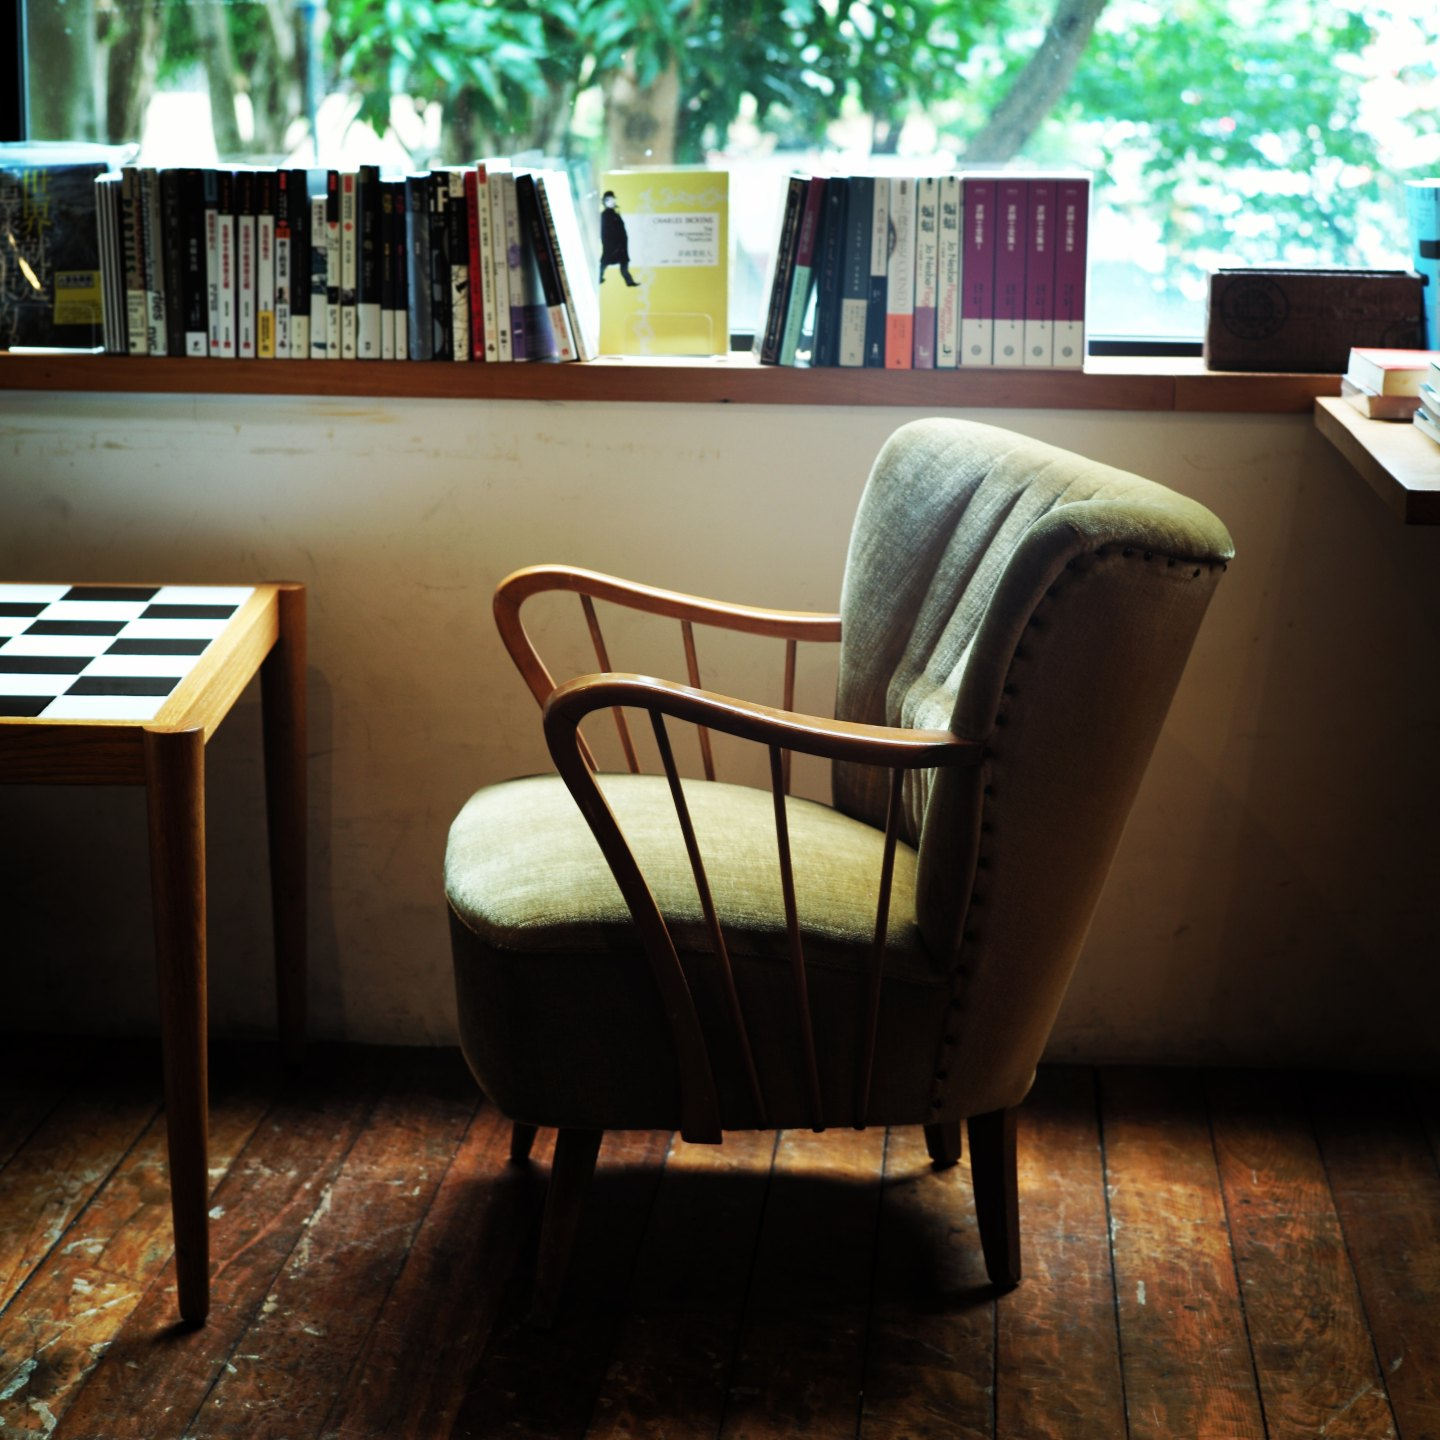 Chair, chessboard, and books lining a windowsill